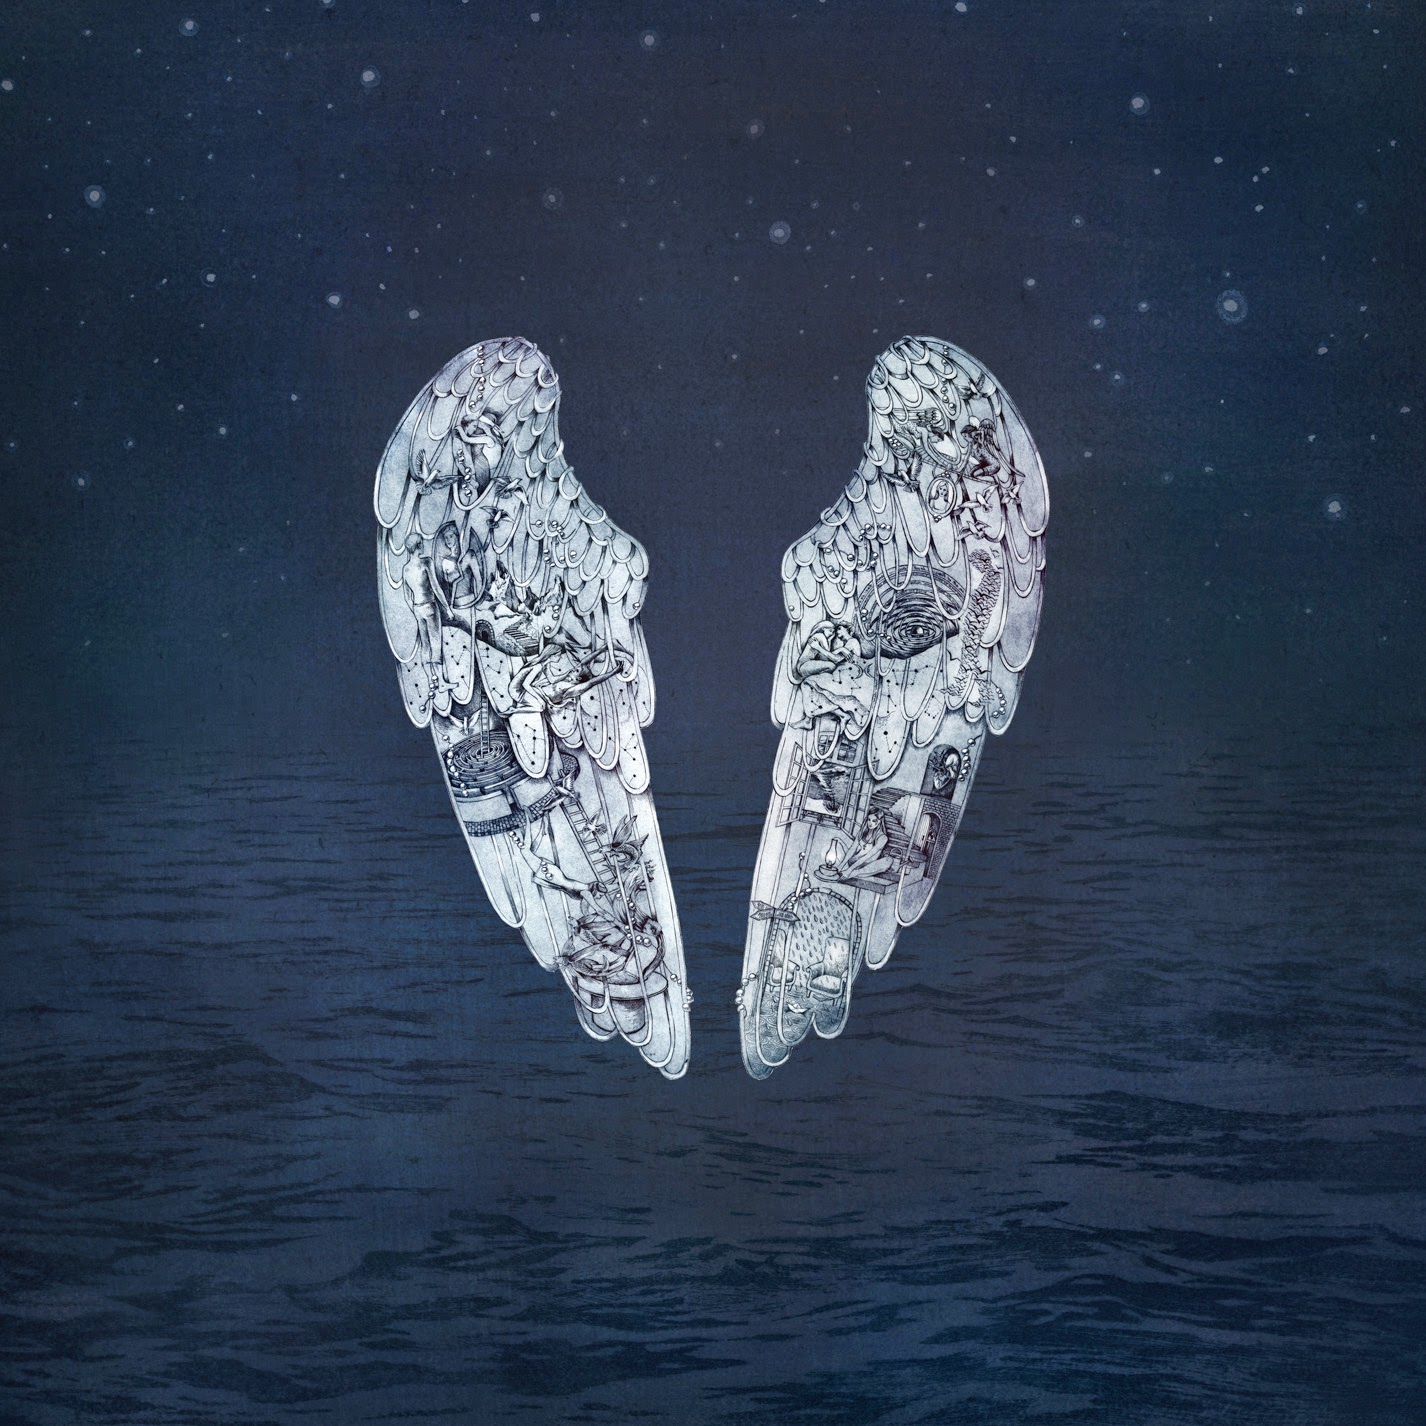 [Crítica] Coldplay - Ghost Stories. Intimo, minimalista, romántico